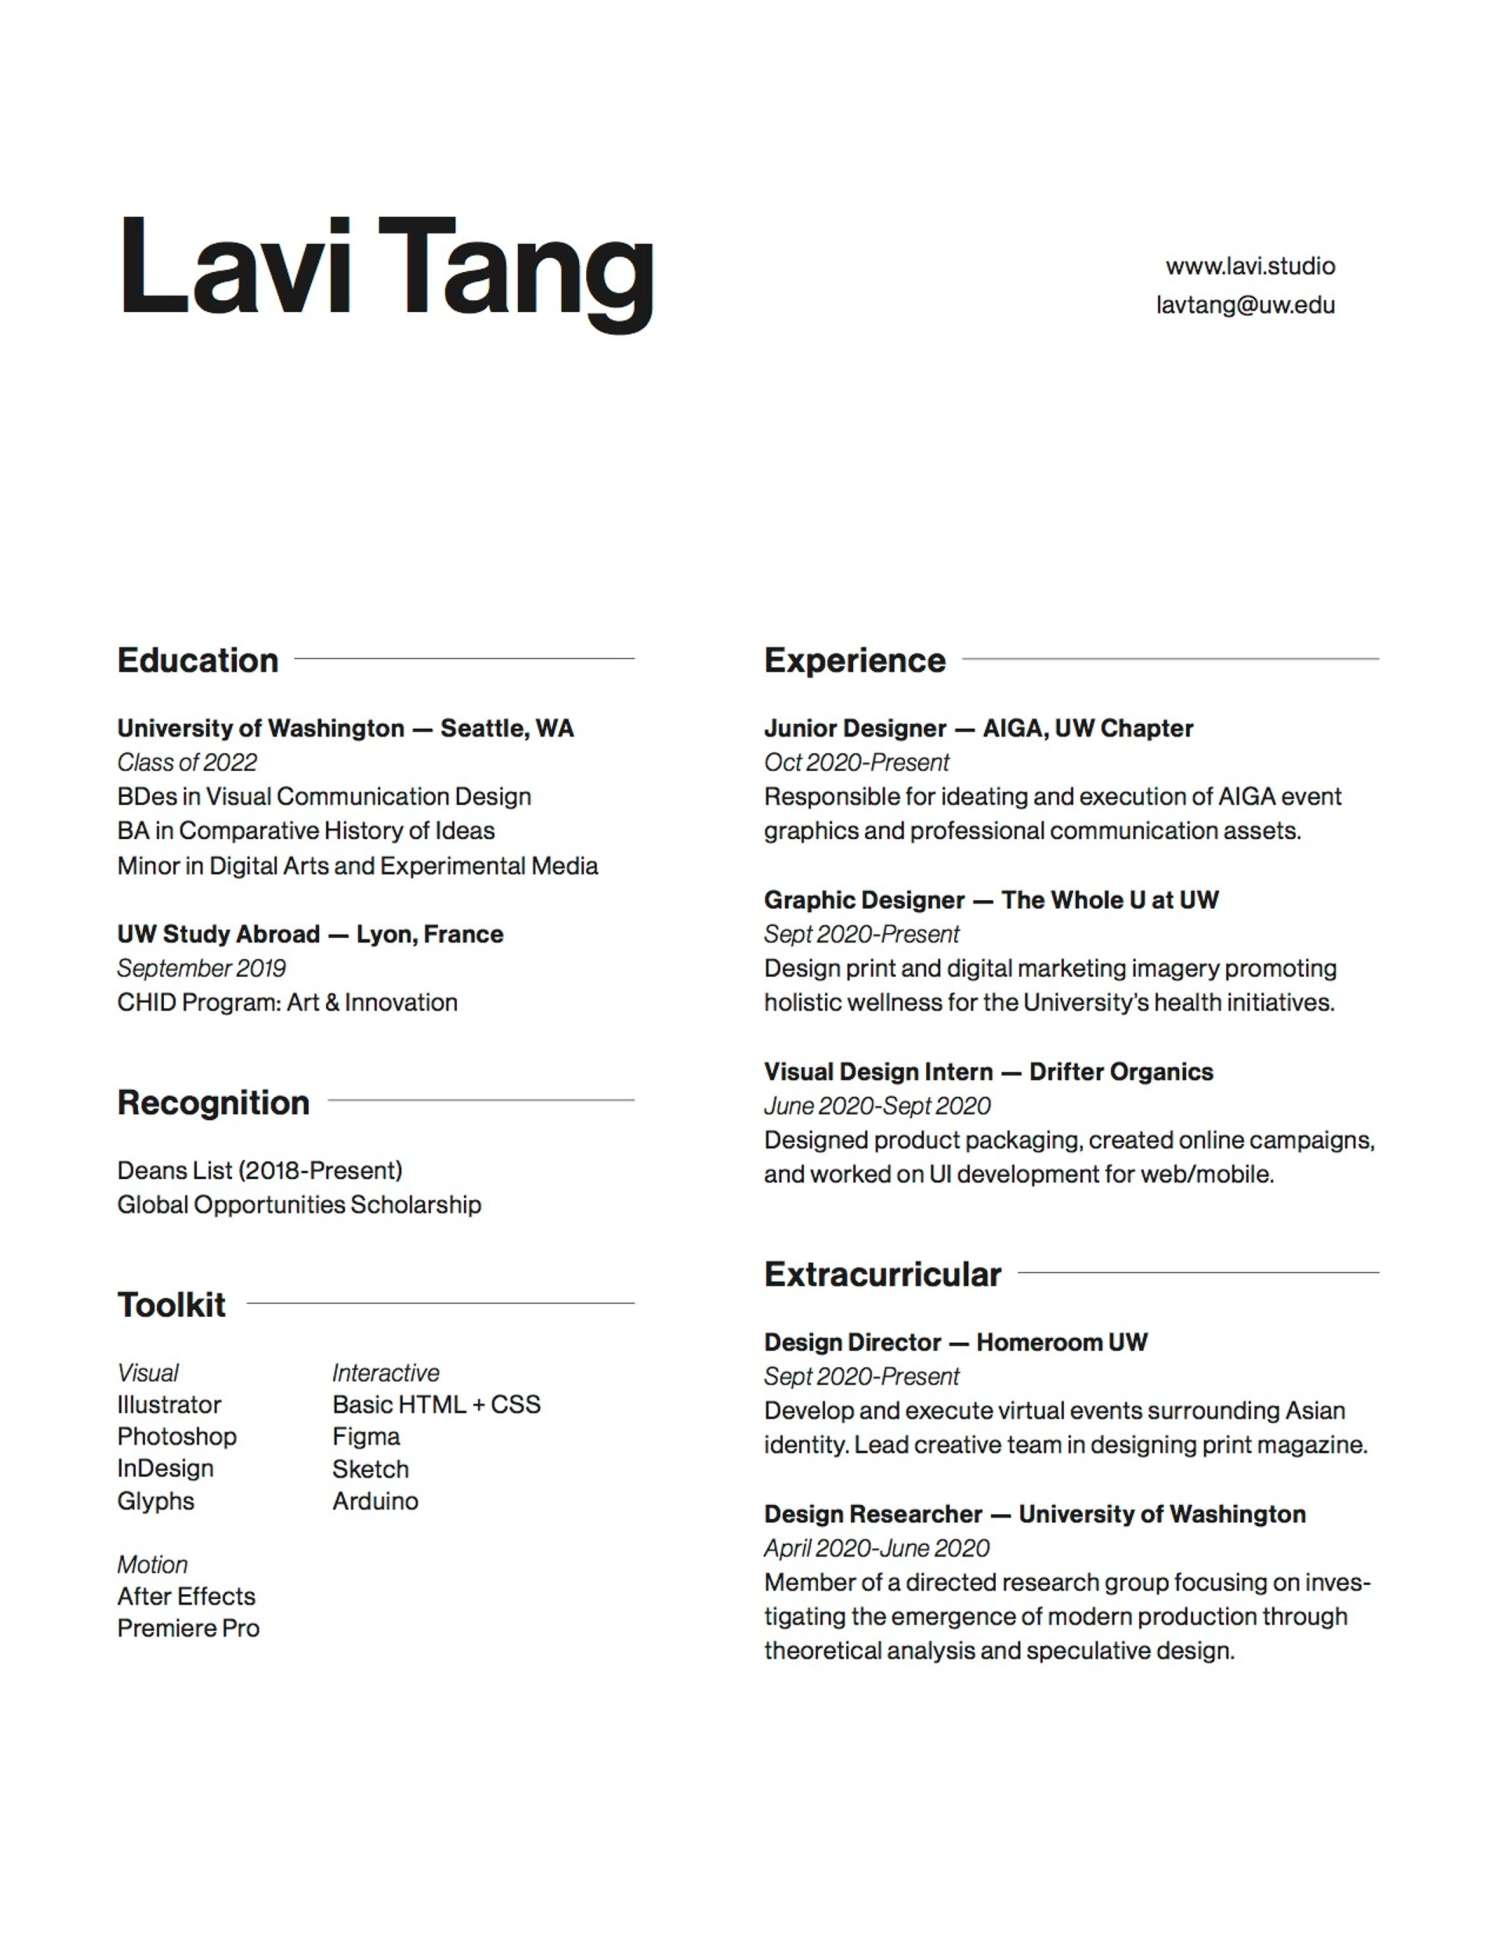 ux designer resumes and template coursera sr web resume sample lavi tang current student Resume Sr Web Designer Resume Sample